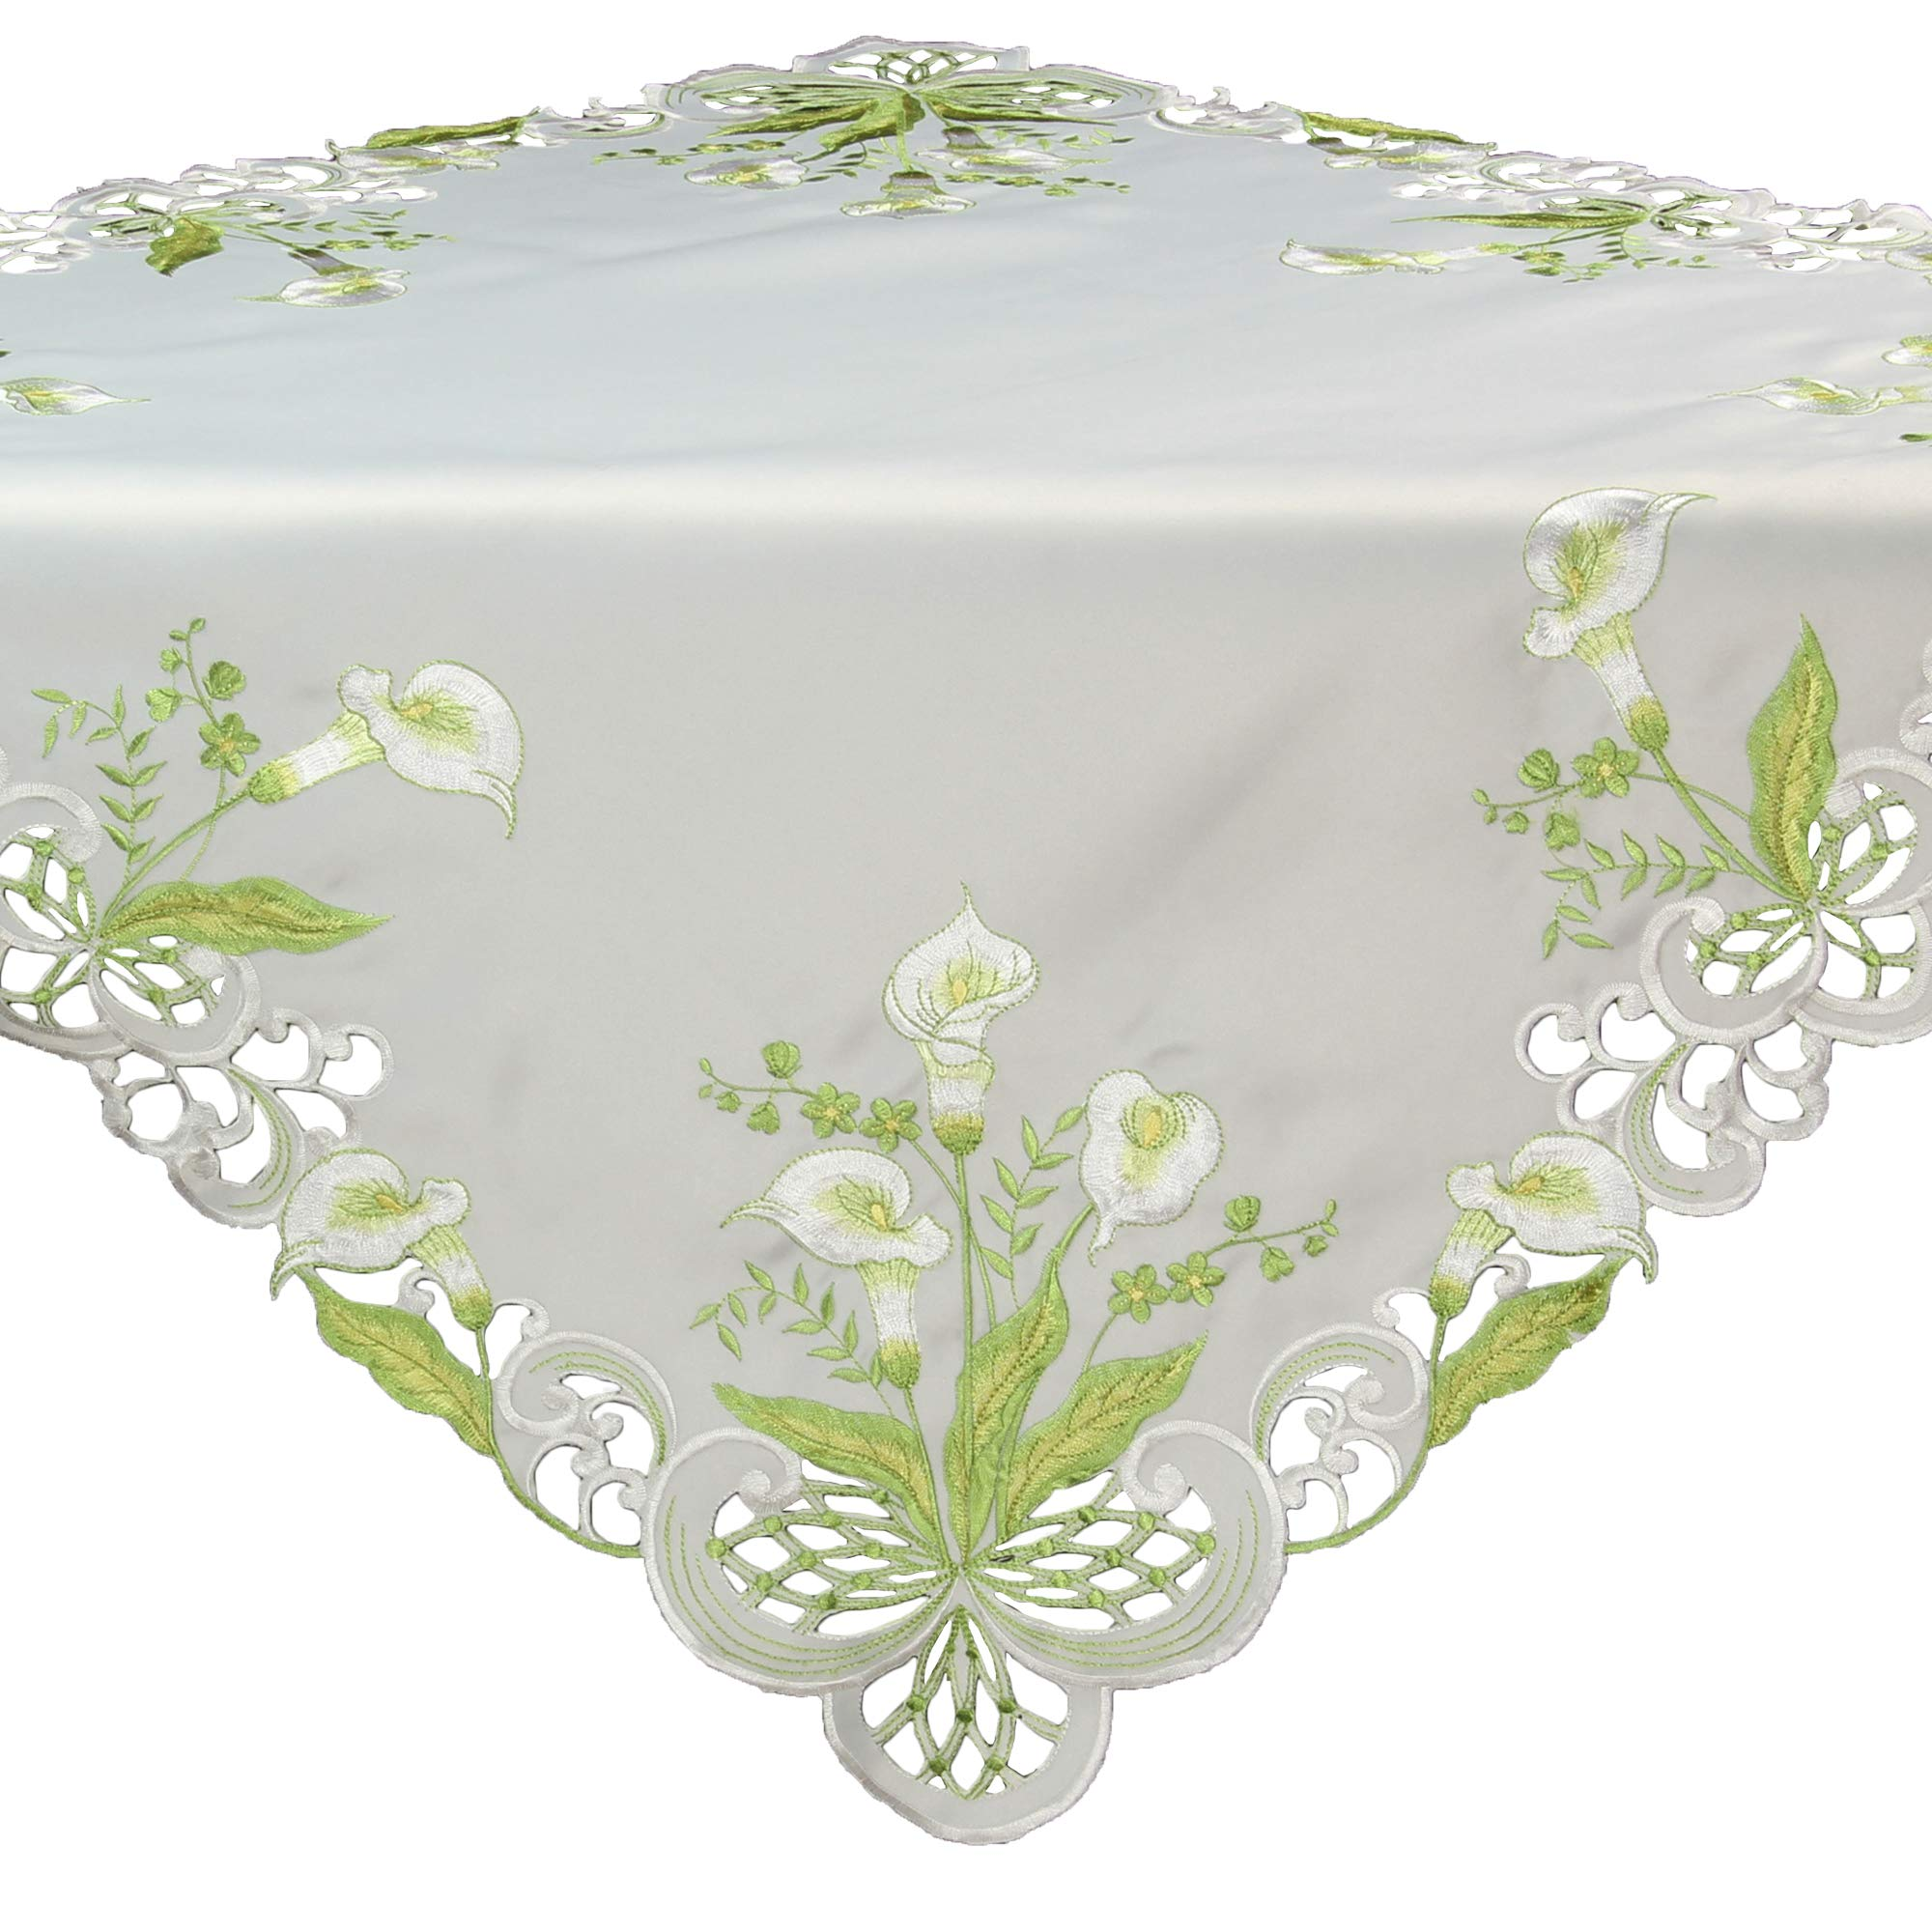 Quinnyshop White Calla Lily Spring Embroidery Tablecloth Table Overlay Approx. 34-inch-by-34-inch / 85 x 85 cm Satin-Look, White by Quinnyshop